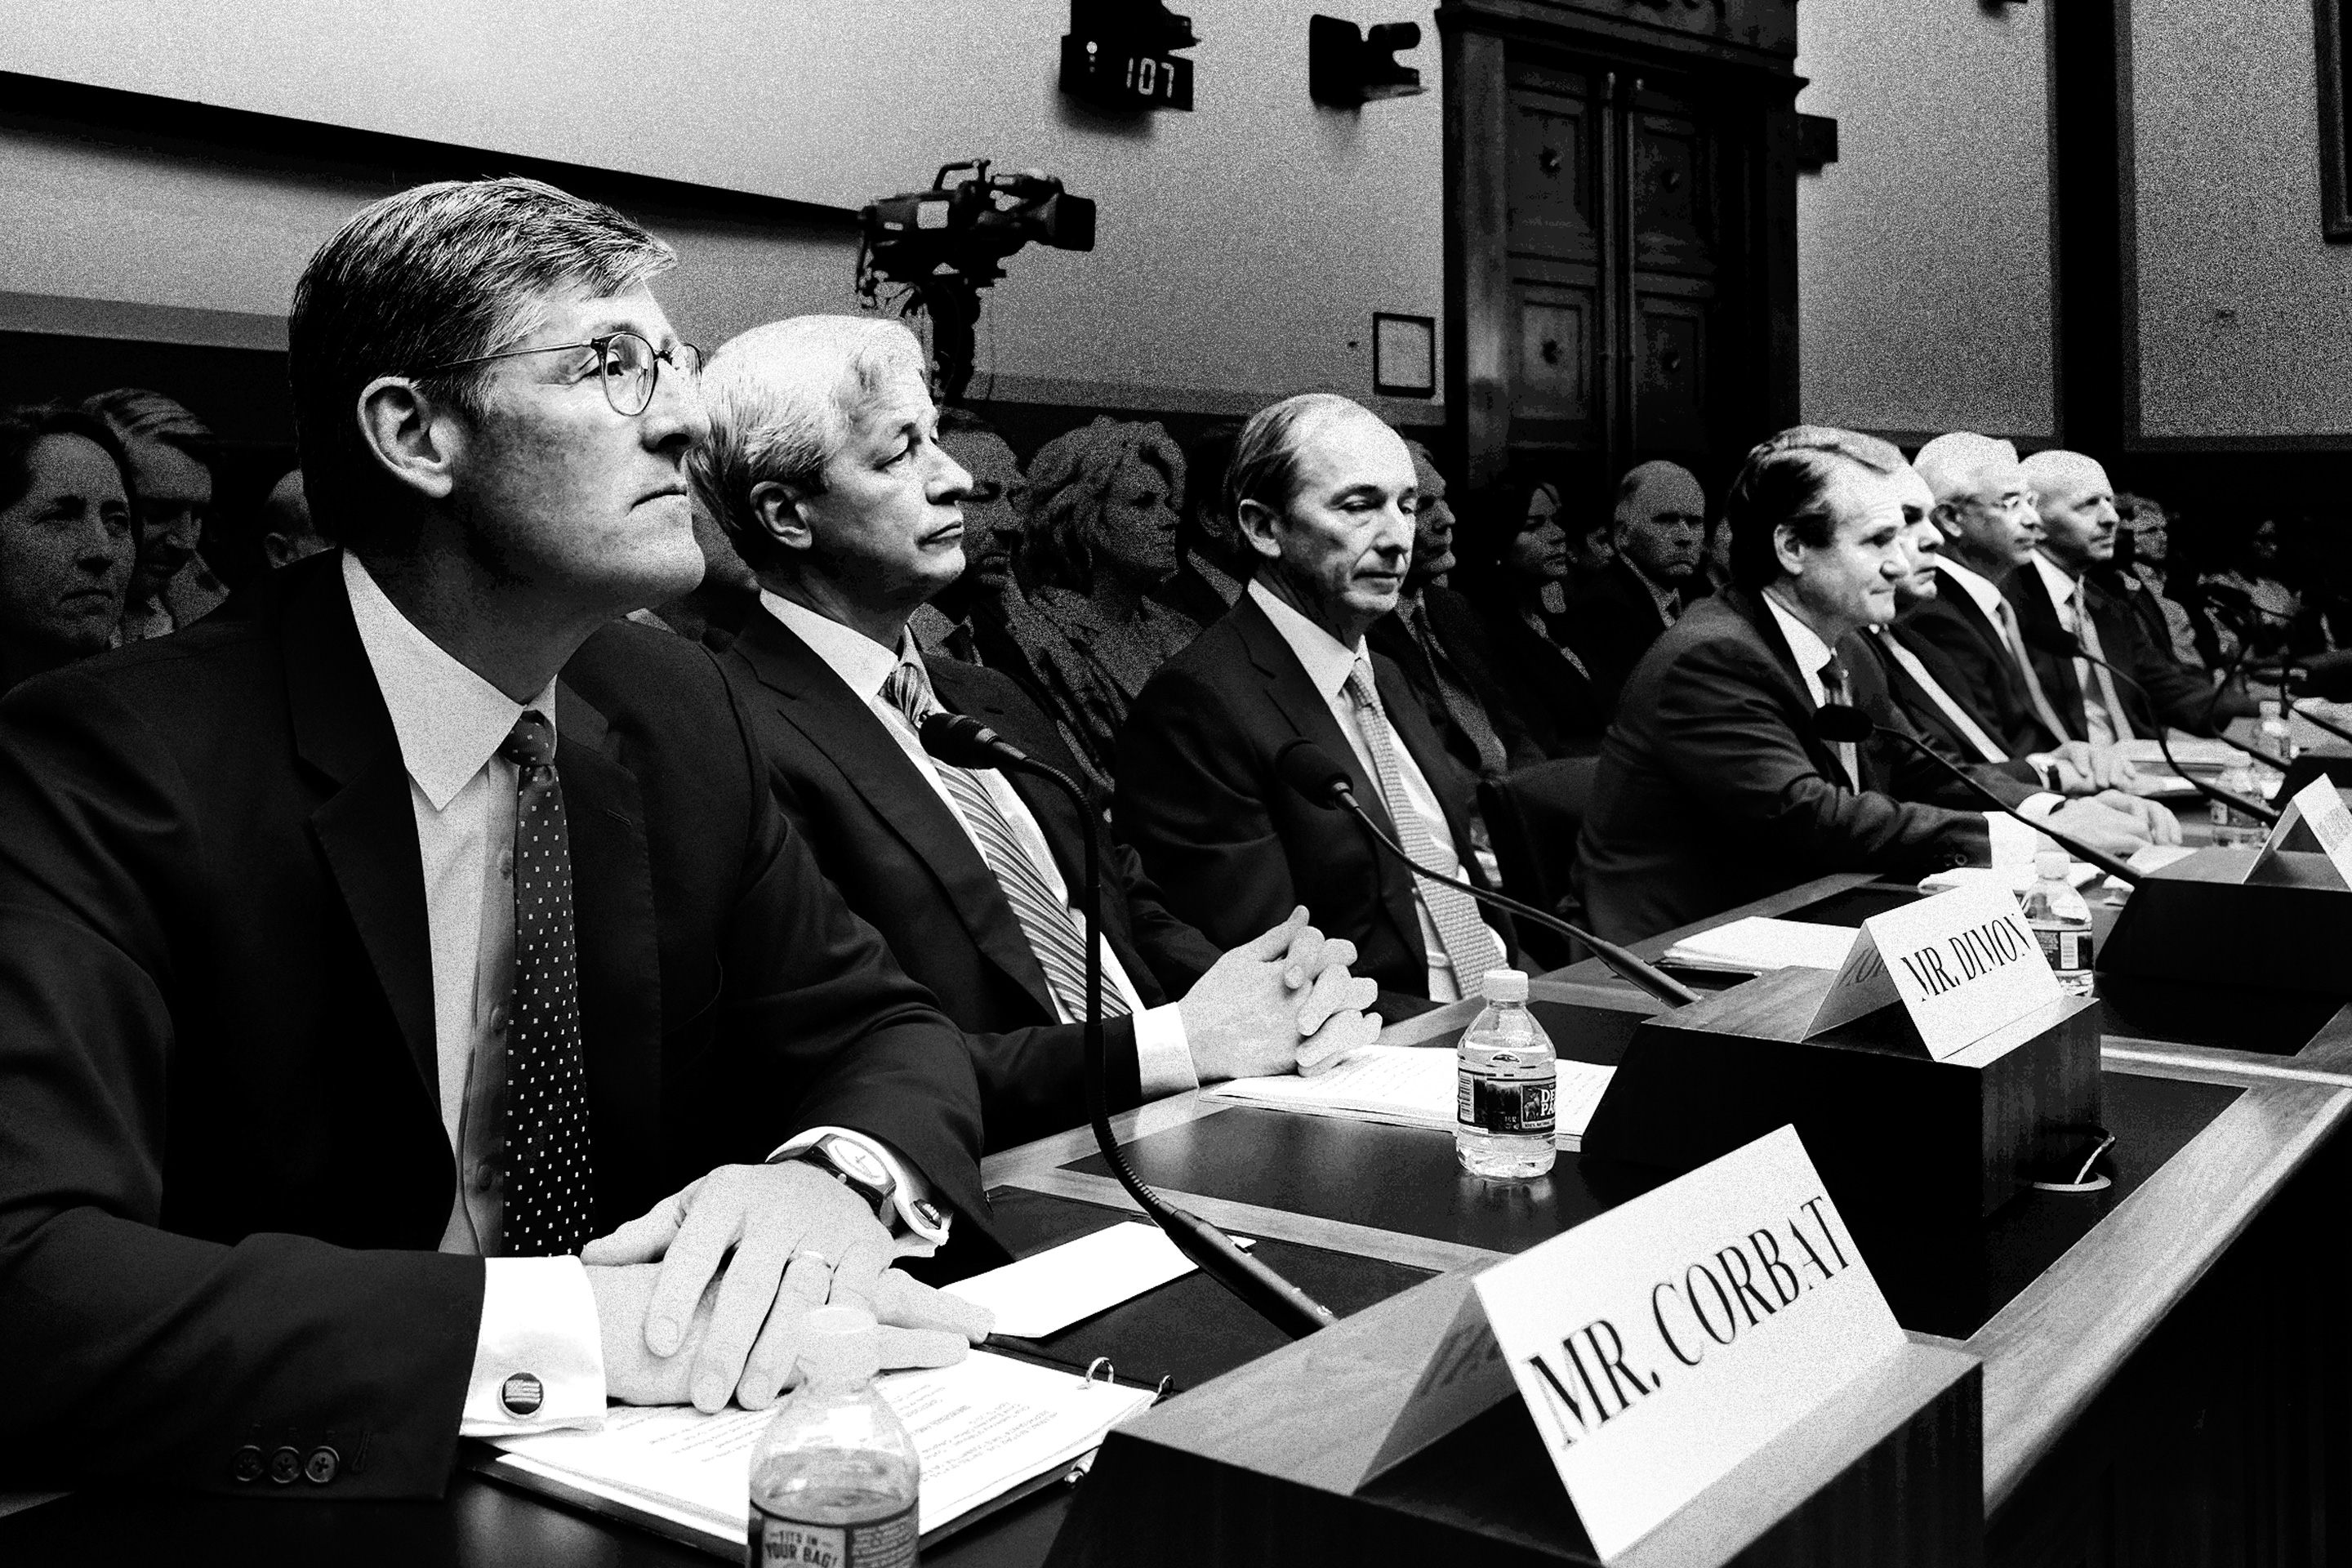 Look-alikes: The CEOs of Wall Street's biggest banks testify before Congress in April 2019.